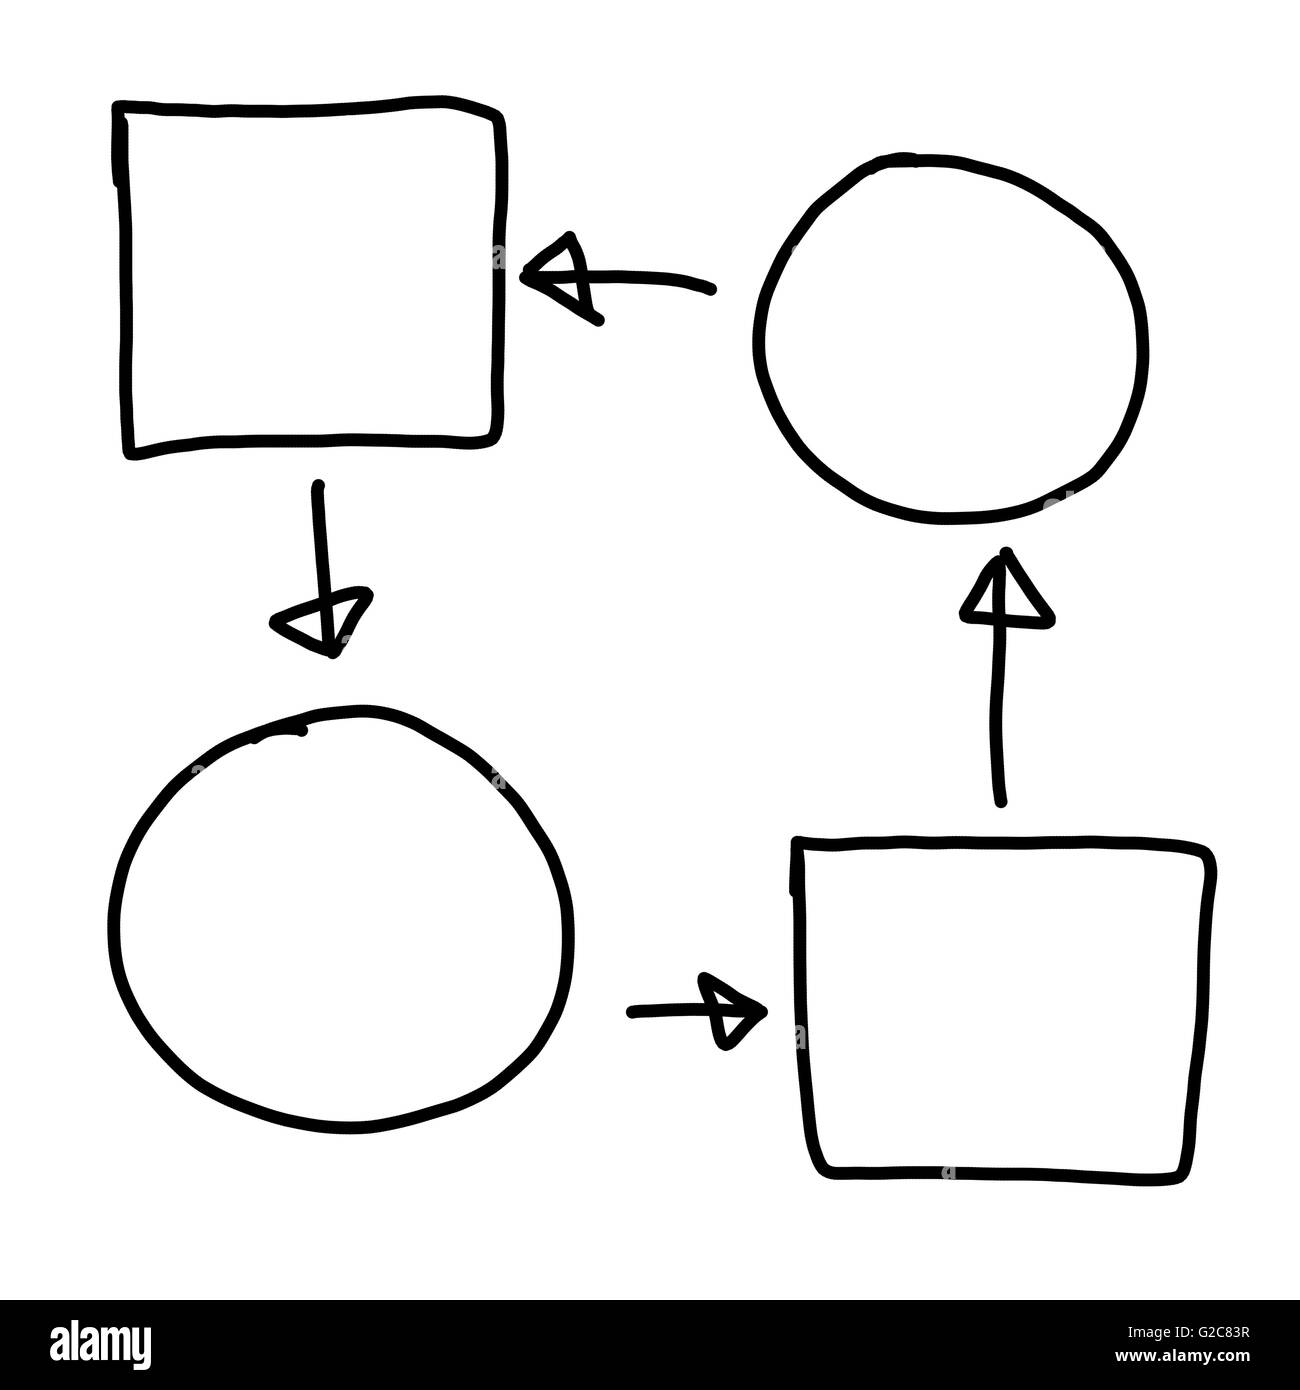 Hand drawn symbol of empty geometric shapes graphics for concept hand drawn symbol of empty geometric shapes graphics for concept ideal applications in businessyou can put data into it ccuart Choice Image